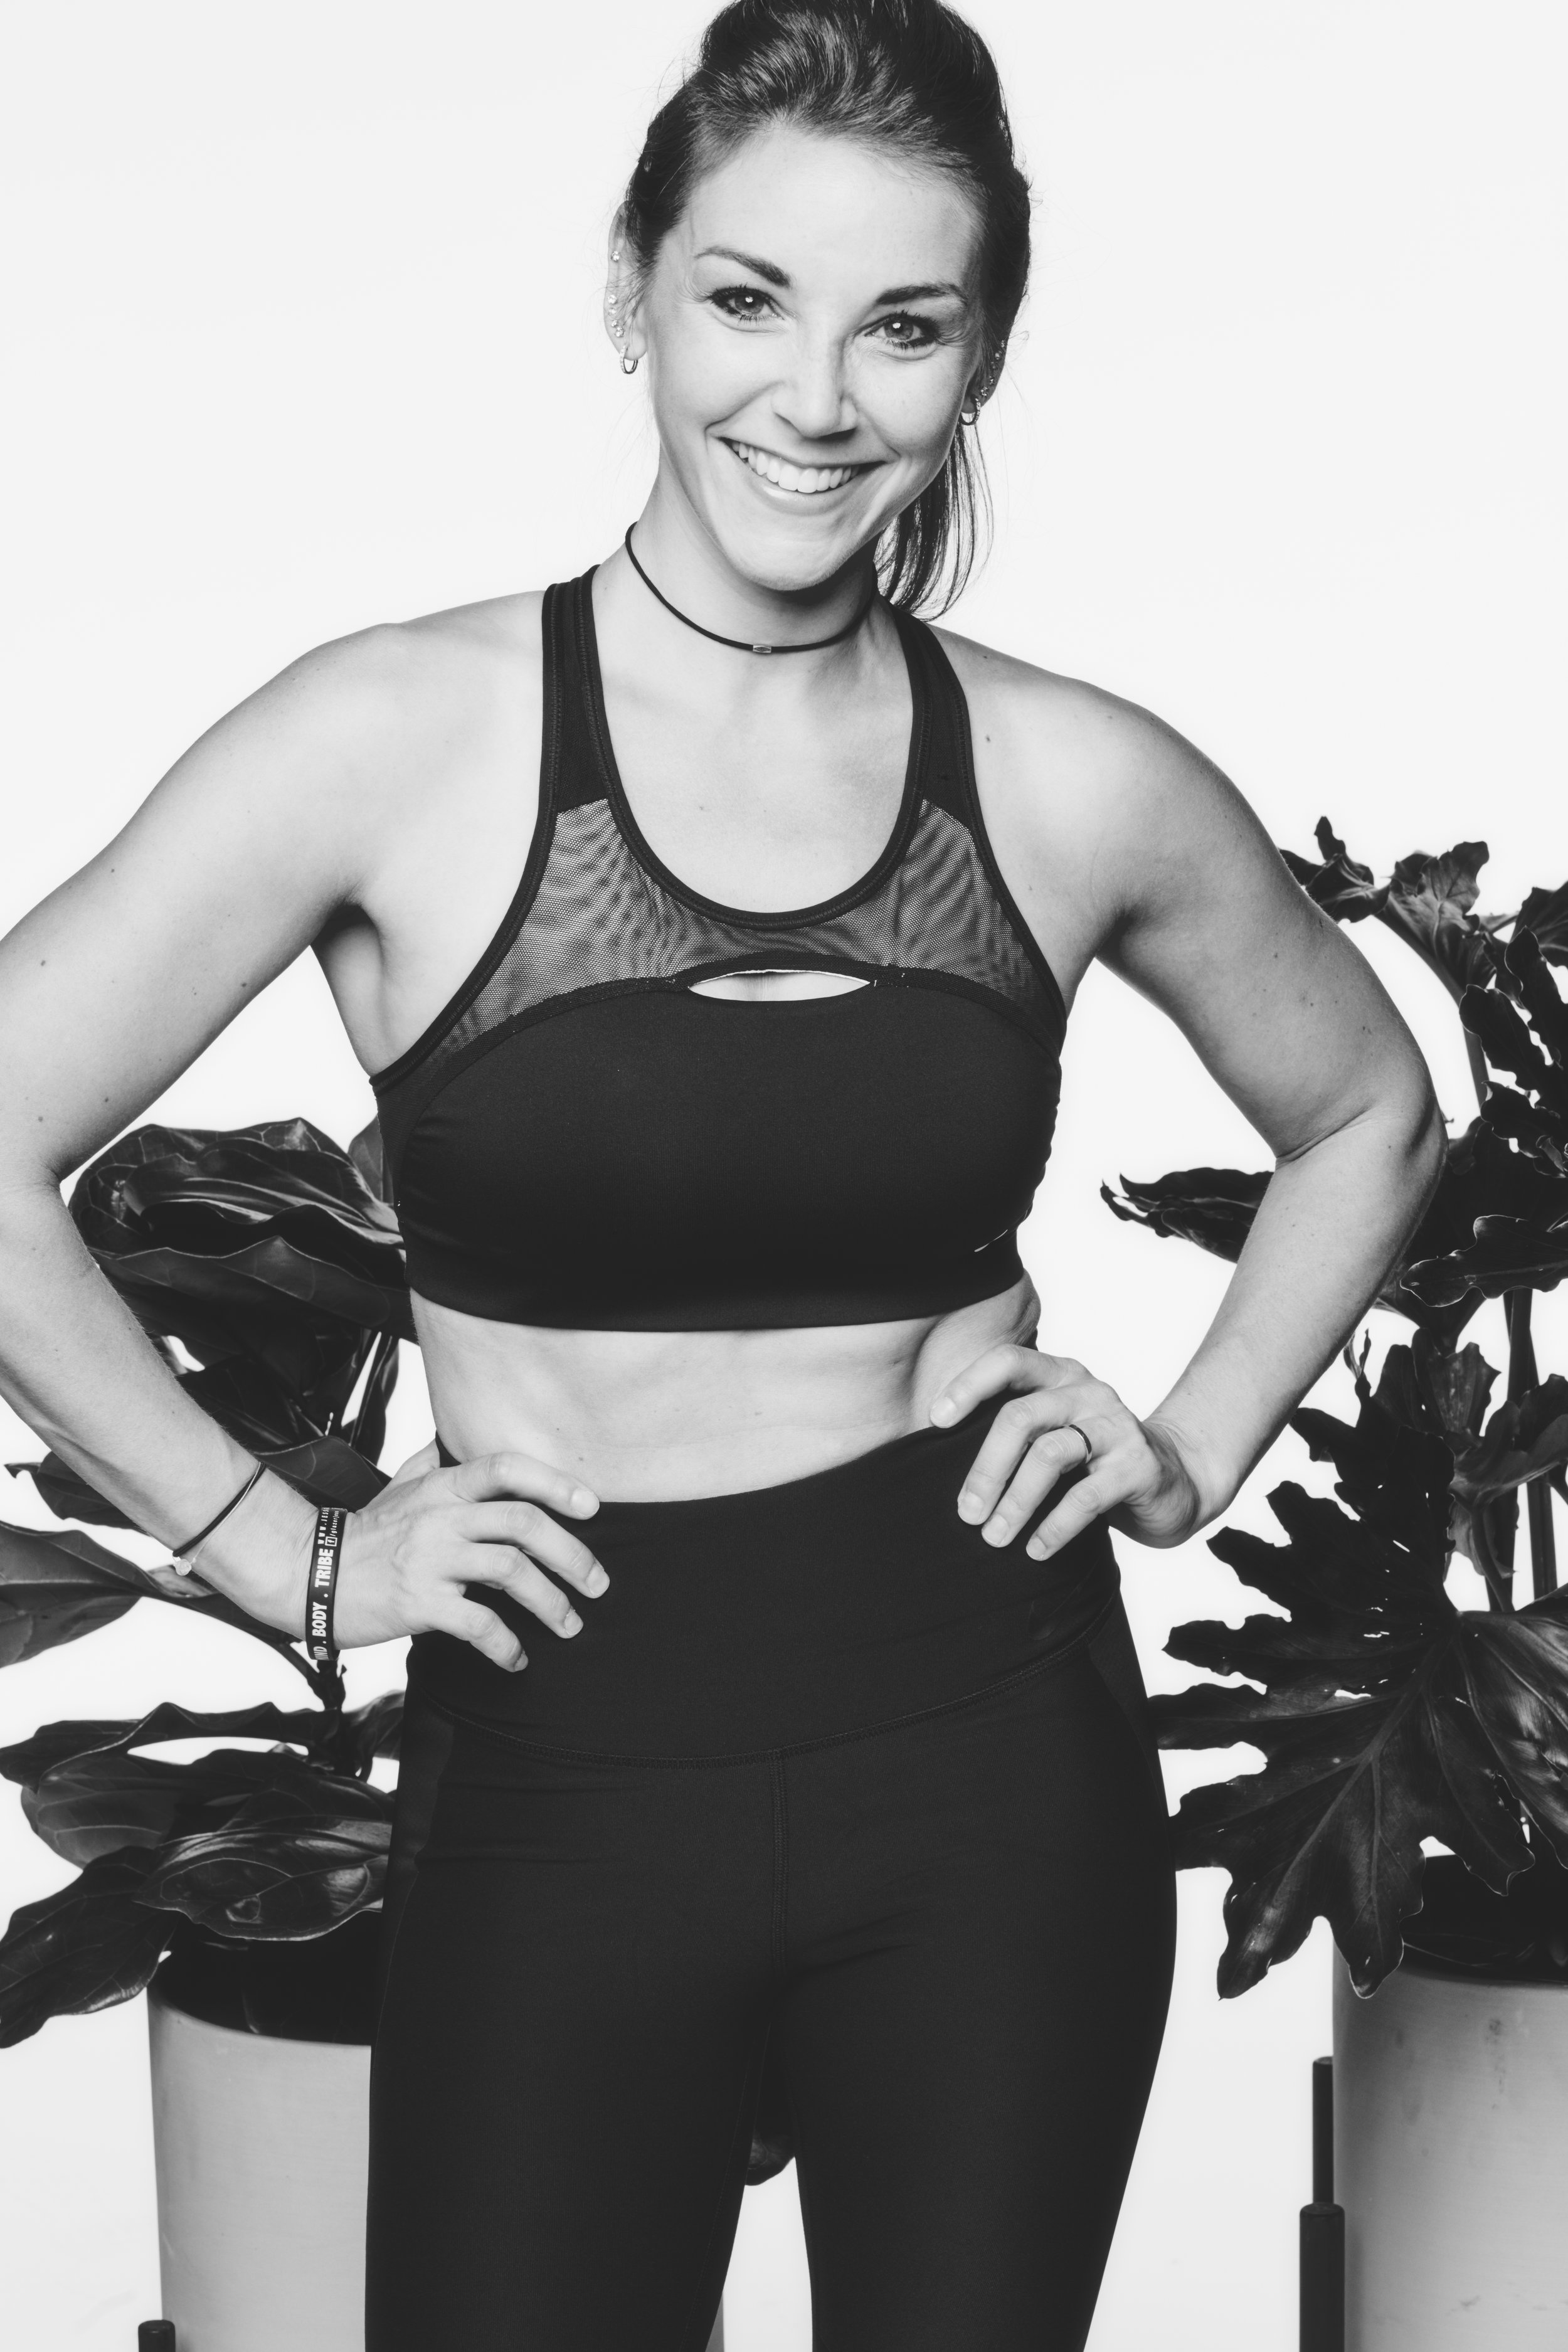 """Jess Glazer, Strength Training   Jess is a Manhattan-based personal trainer, group instructor, gymnast, fitness competitor, eating disorder survivor, self-love junkie, motivator, plant-based chef, and founder of """"FITtrips"""". Impressive, right?? We thought so when we met her and got to know her a bit. She's not only all those things, but genuine, energetic and so POSITIVE! Naturally, we hit it off because that's what we aim for in our WR instructors."""